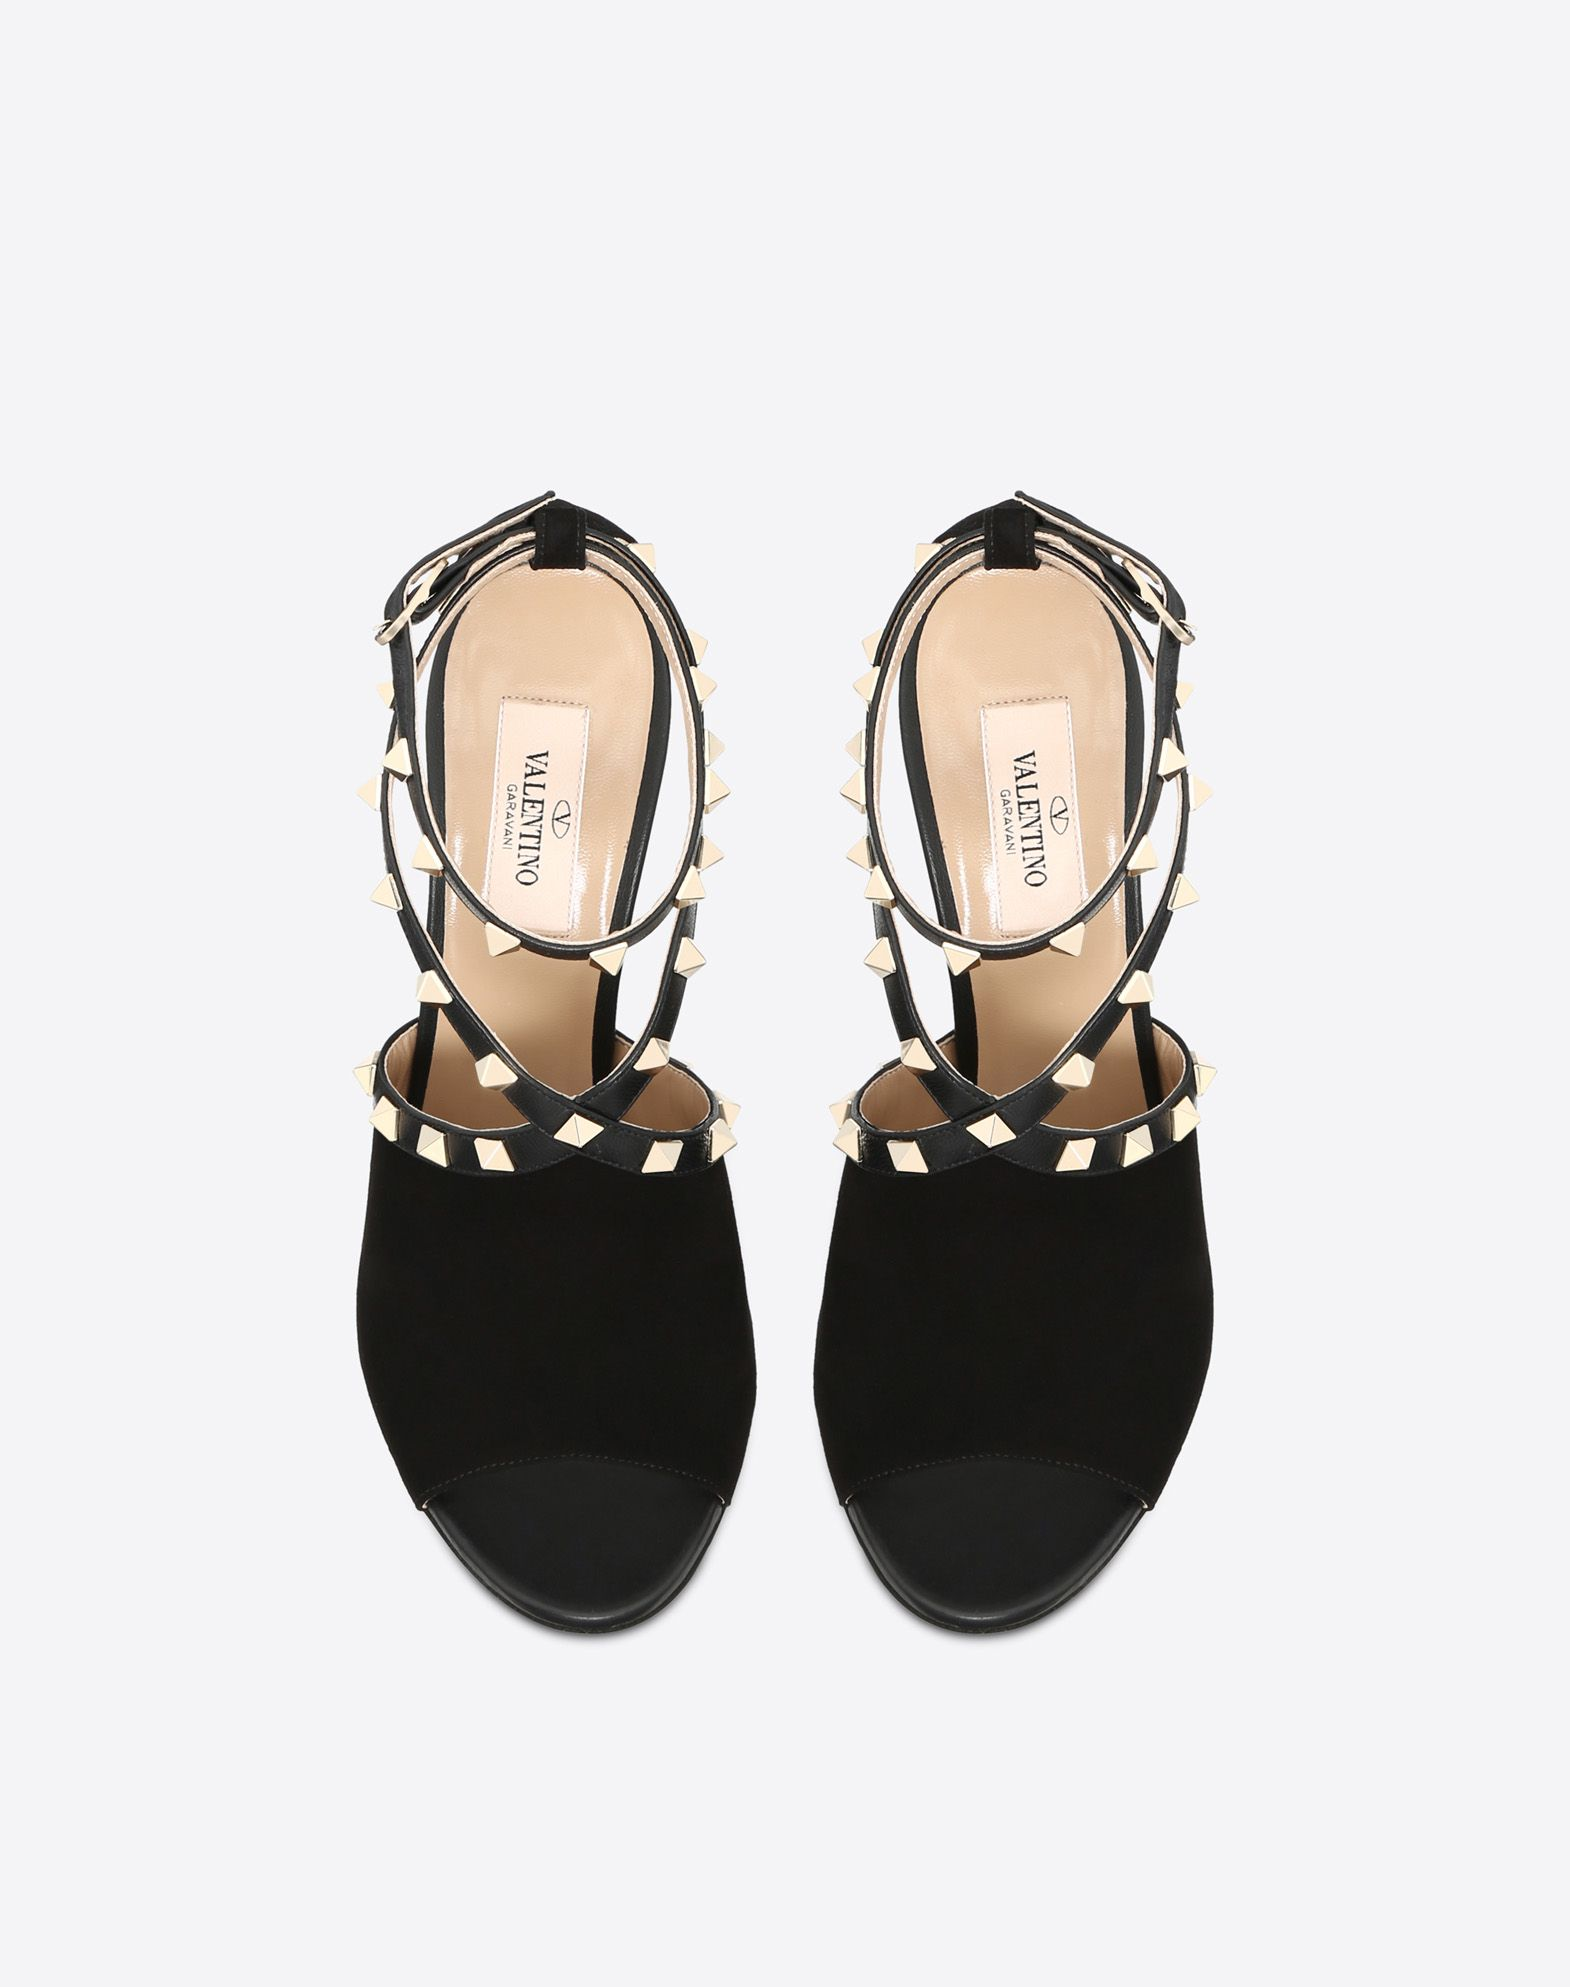 VALENTINO Studs Solid colour Leather sole Buckle  45388161br